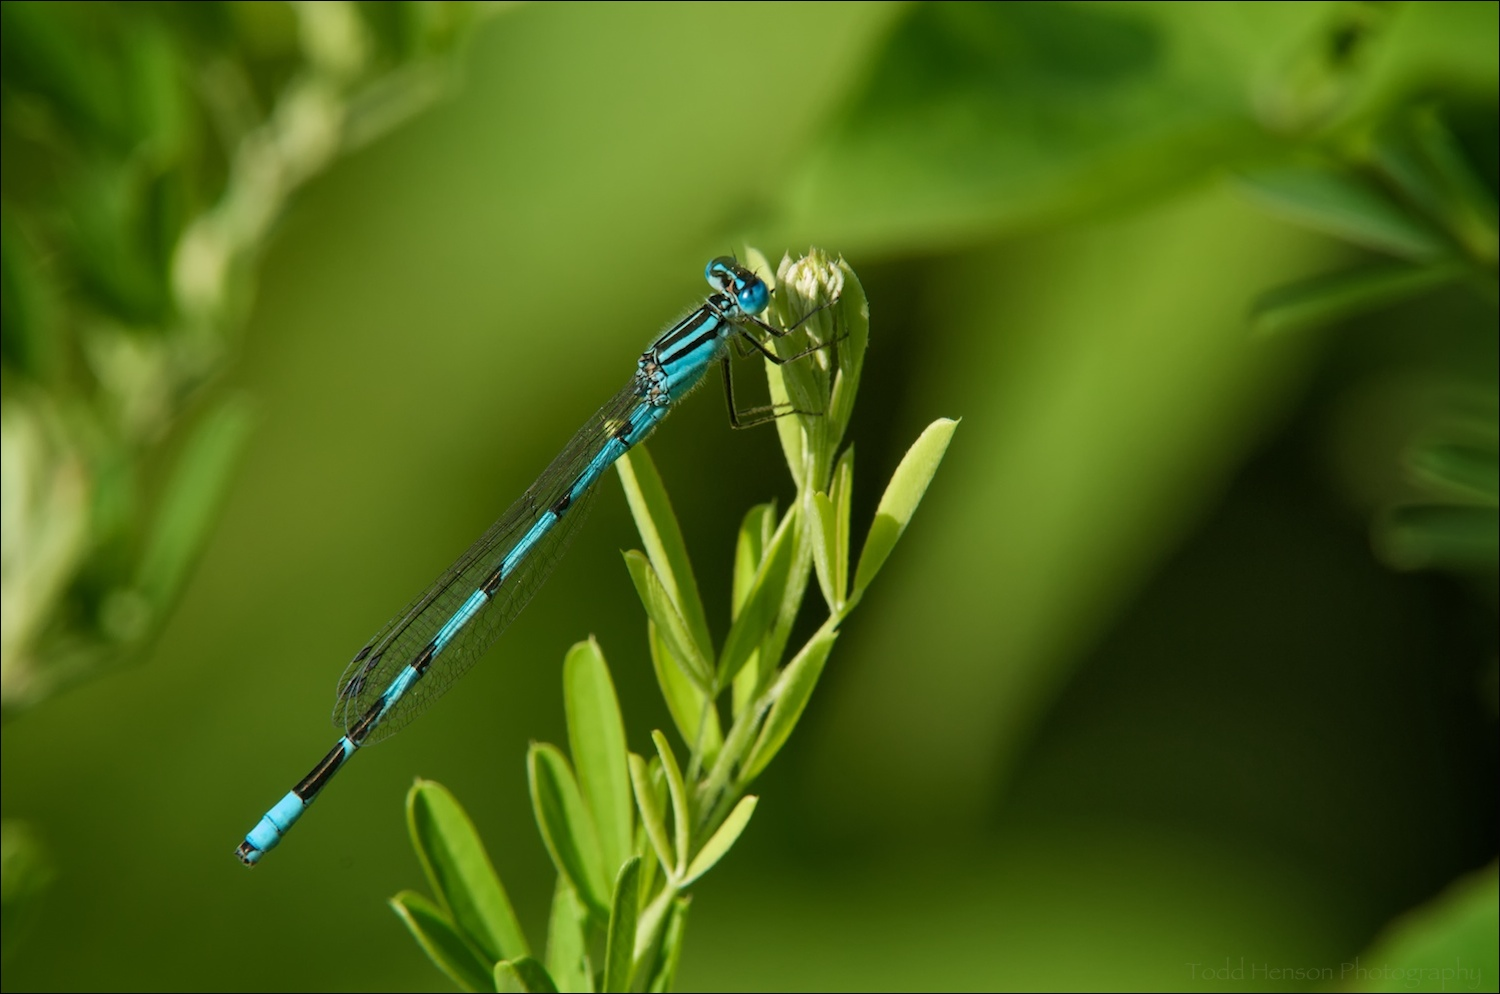 Final image of Familiar Bluet Damselfly.